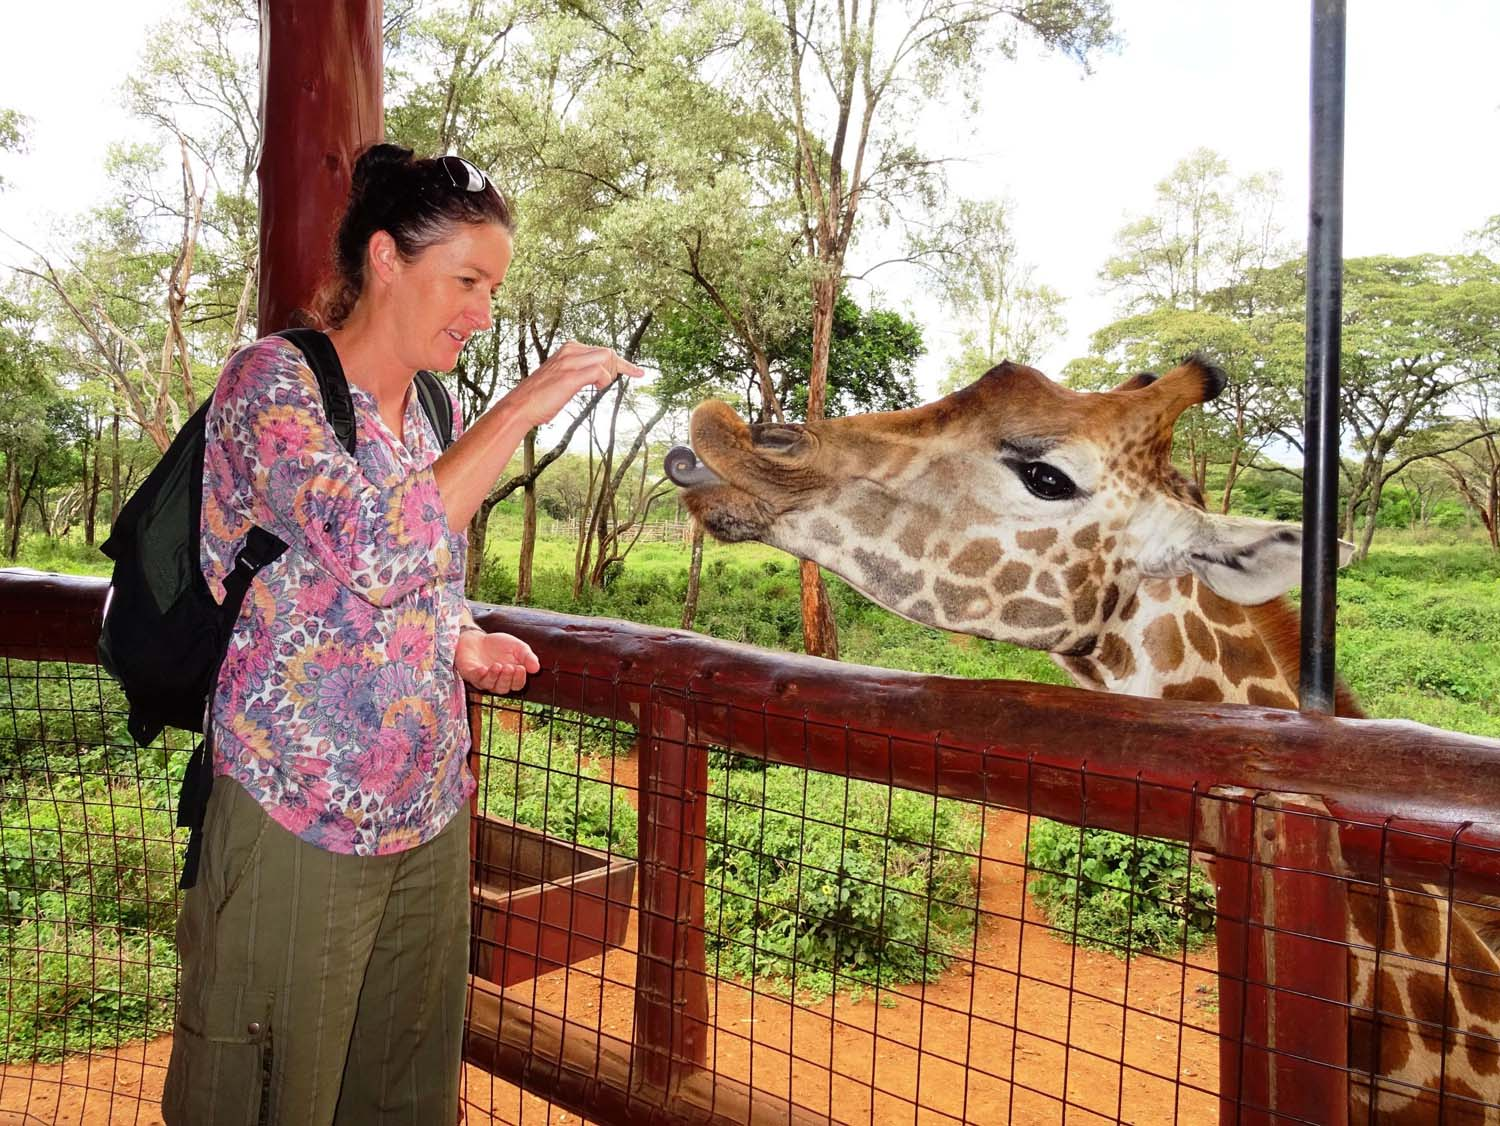 feeding the giraffes